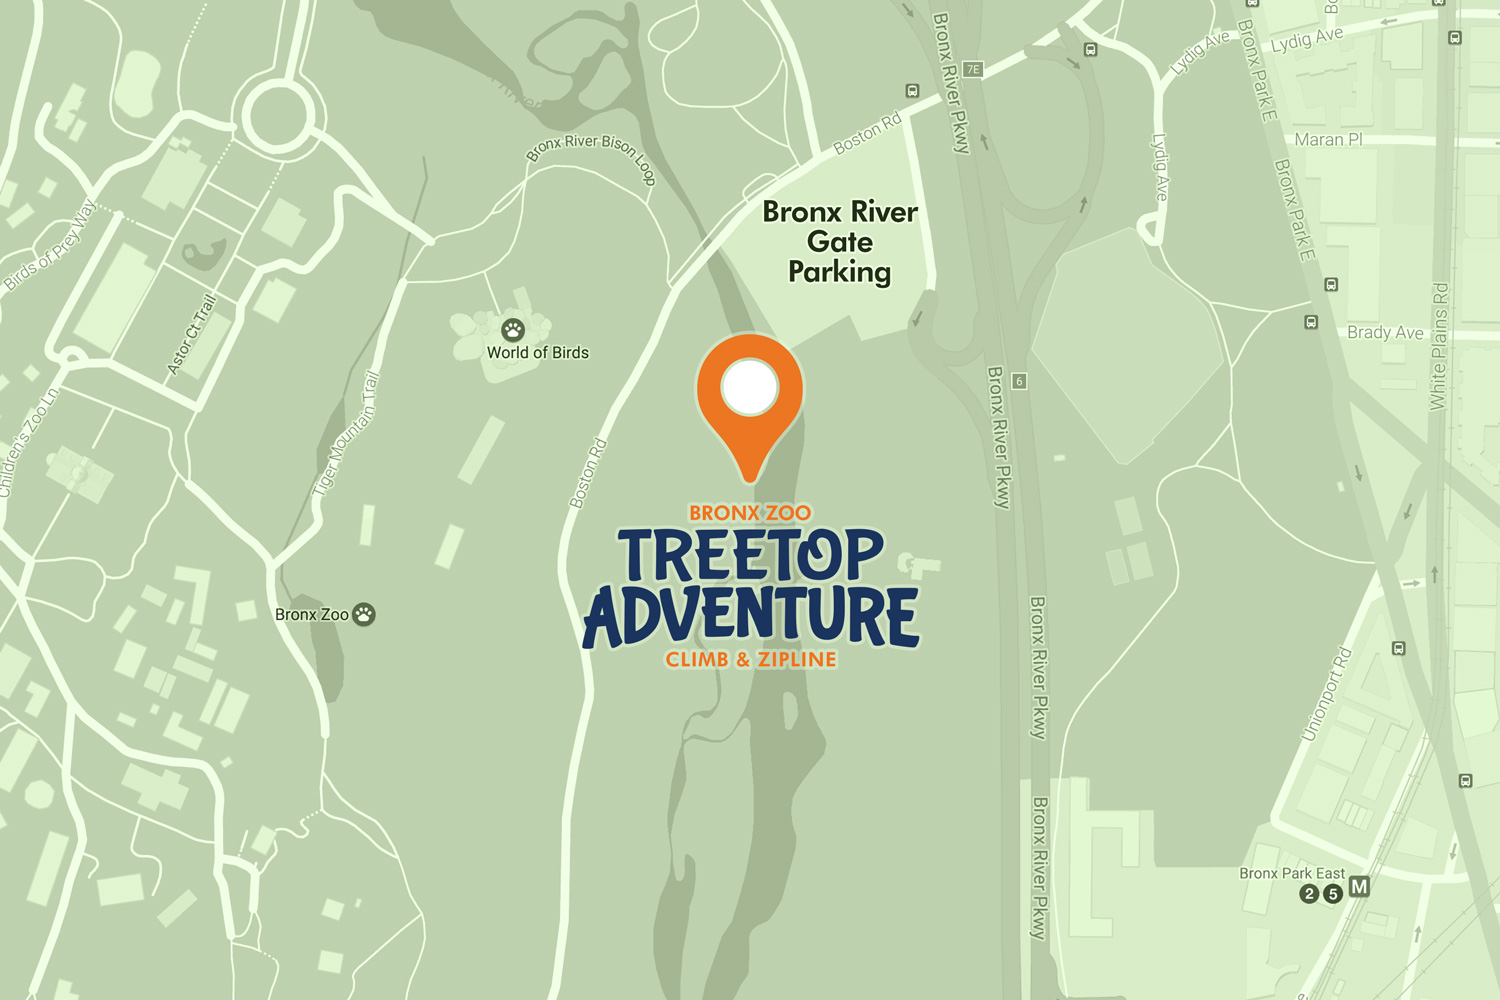 Boston Subway Map To Zoo.Visitor Info Bronx Zoo Treetop Adventure